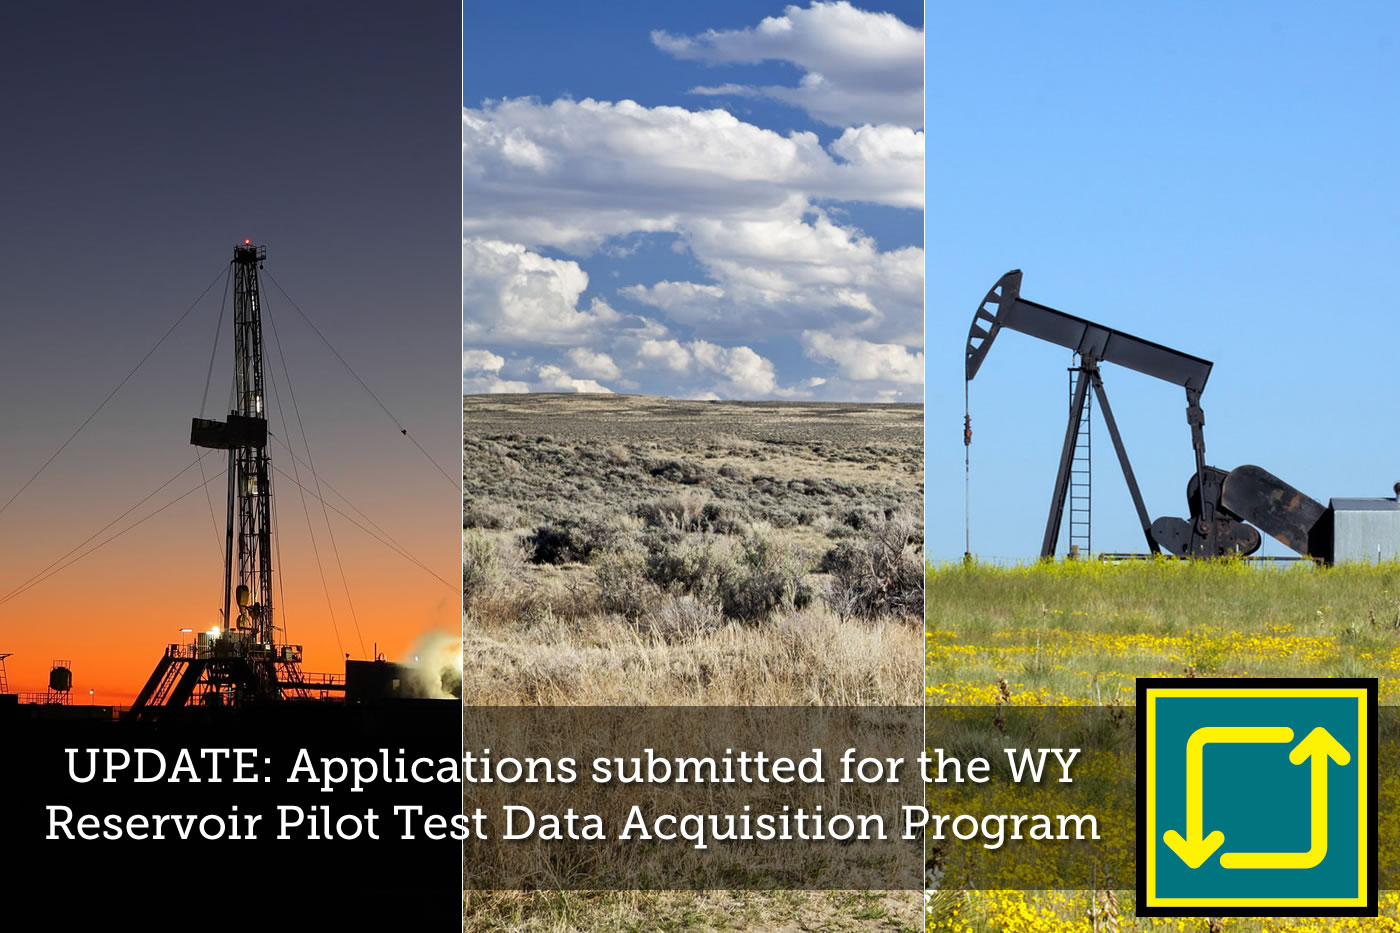 Request for Proposals (RFP) for Wyoming Reservoir Pilot Test Data Acquisition Program